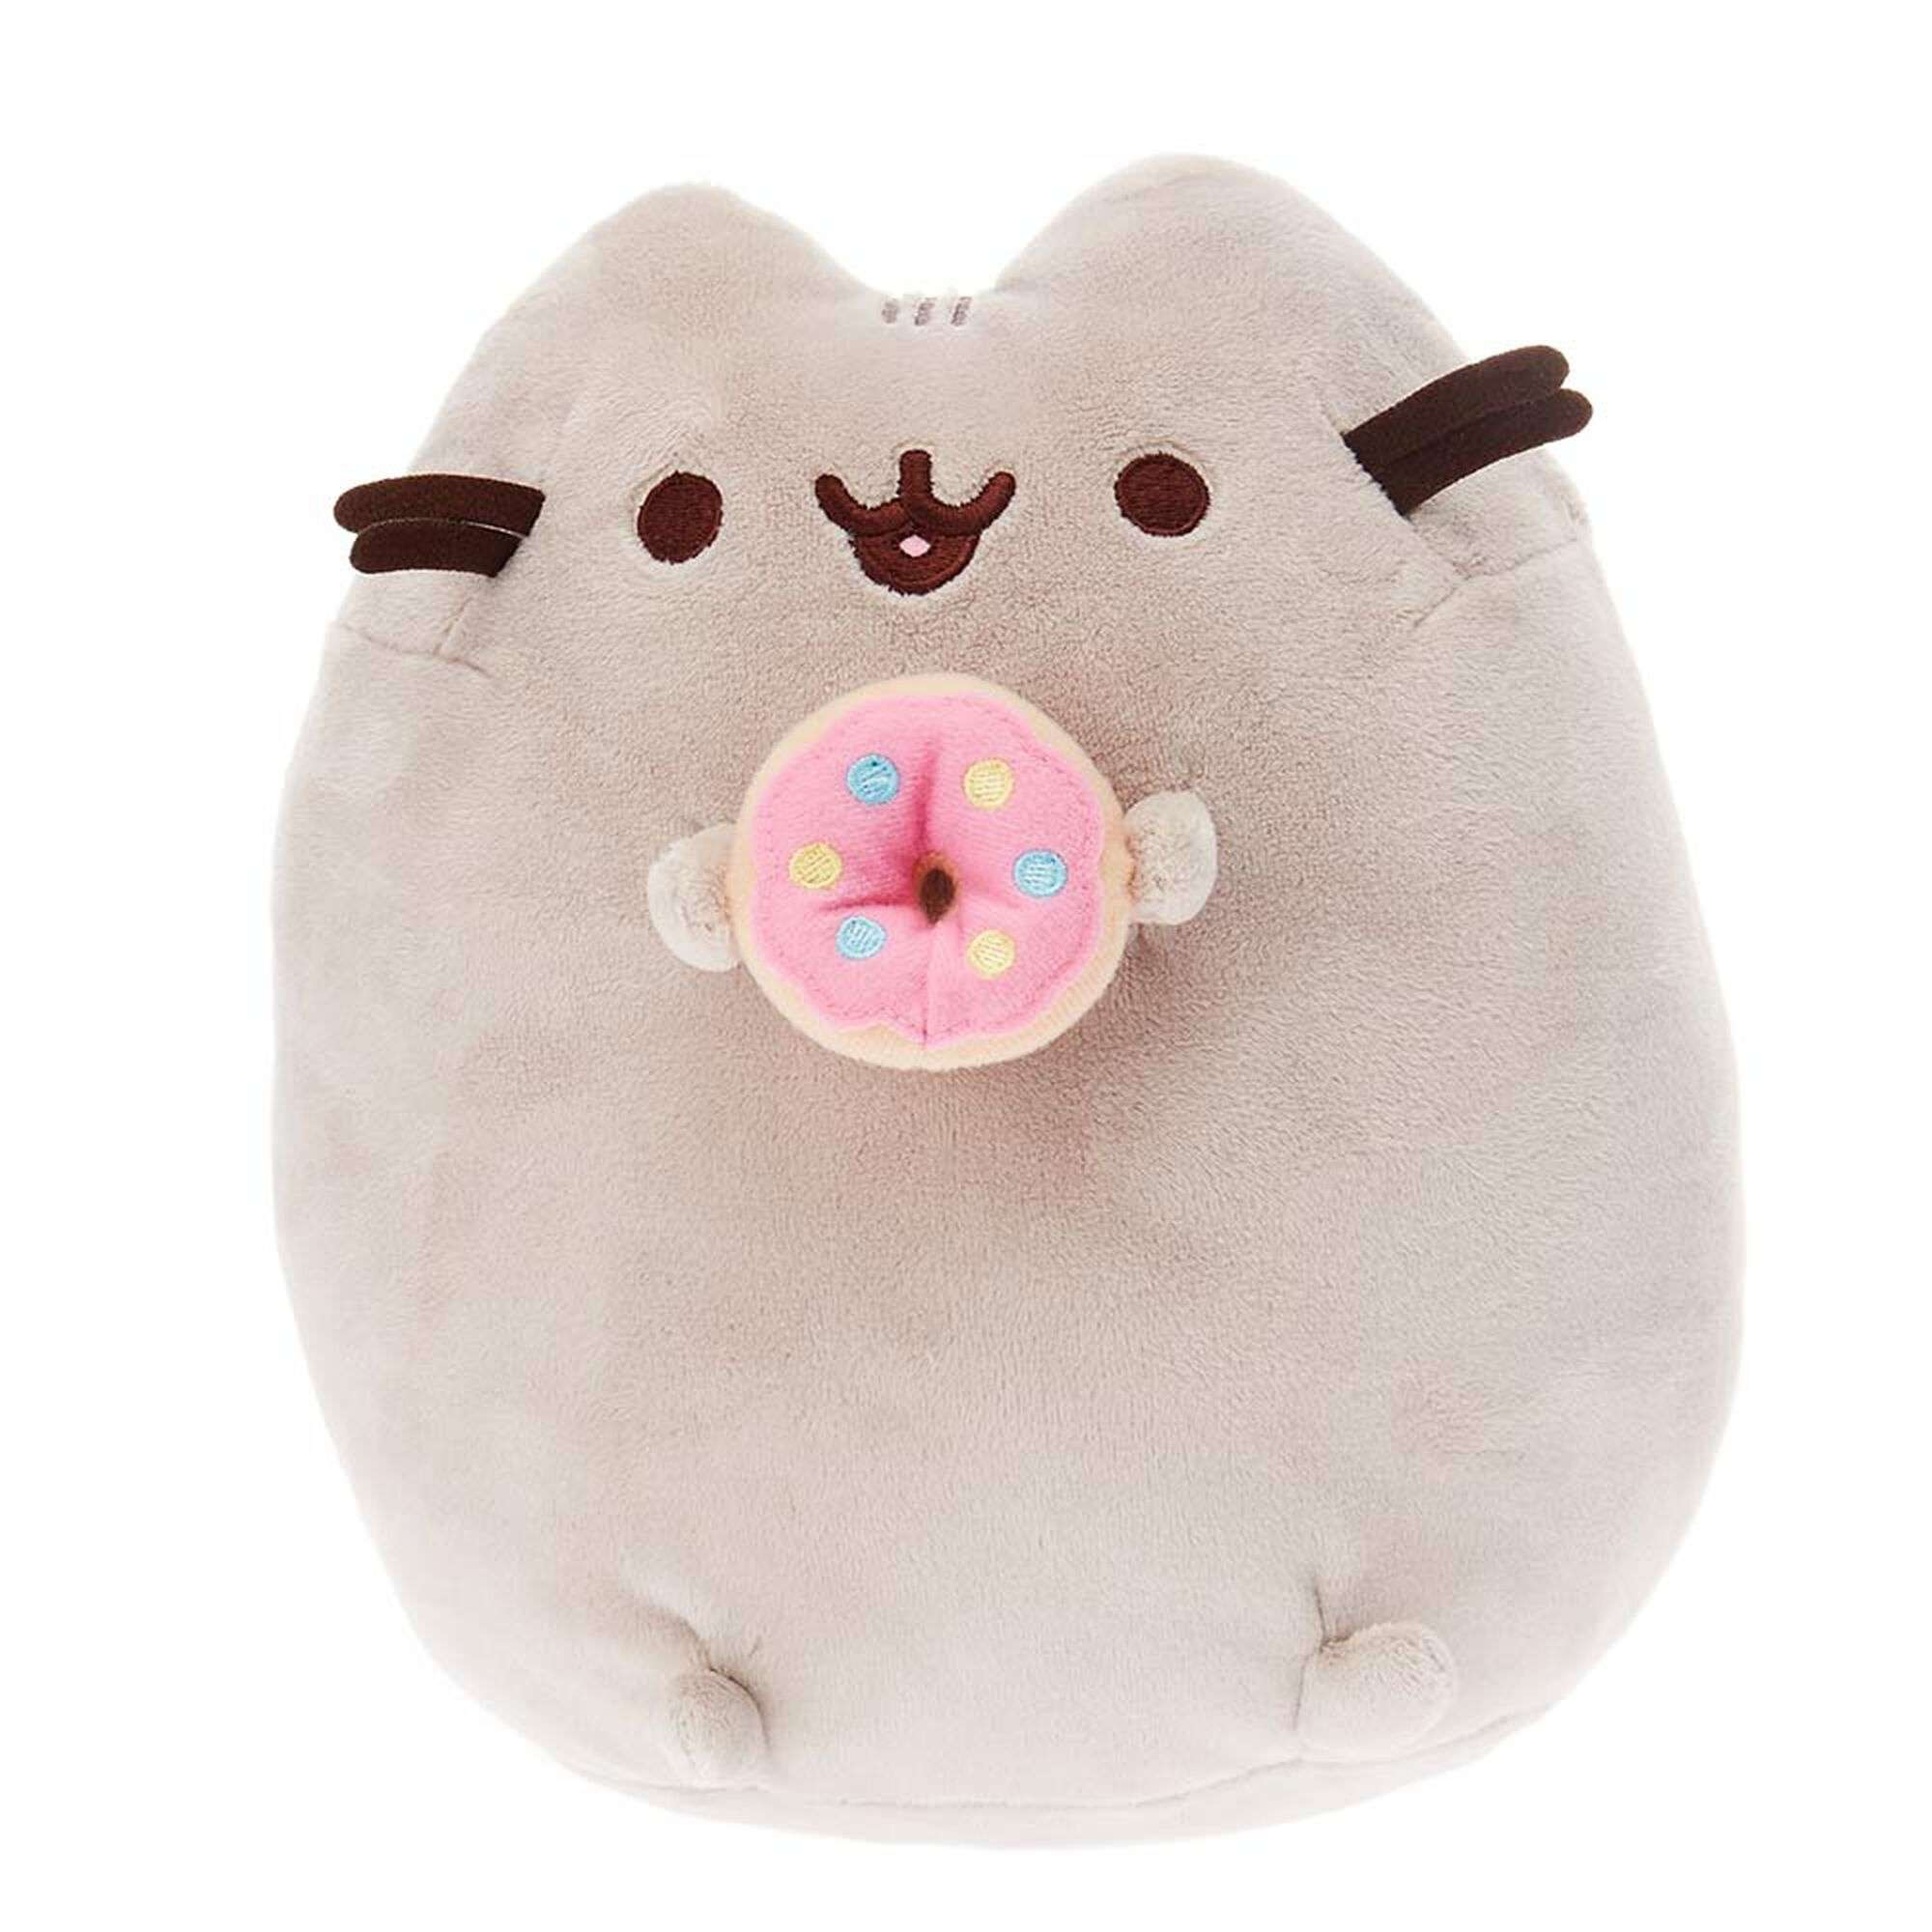 grosse peluche donut pusheen claire 39 s fr. Black Bedroom Furniture Sets. Home Design Ideas